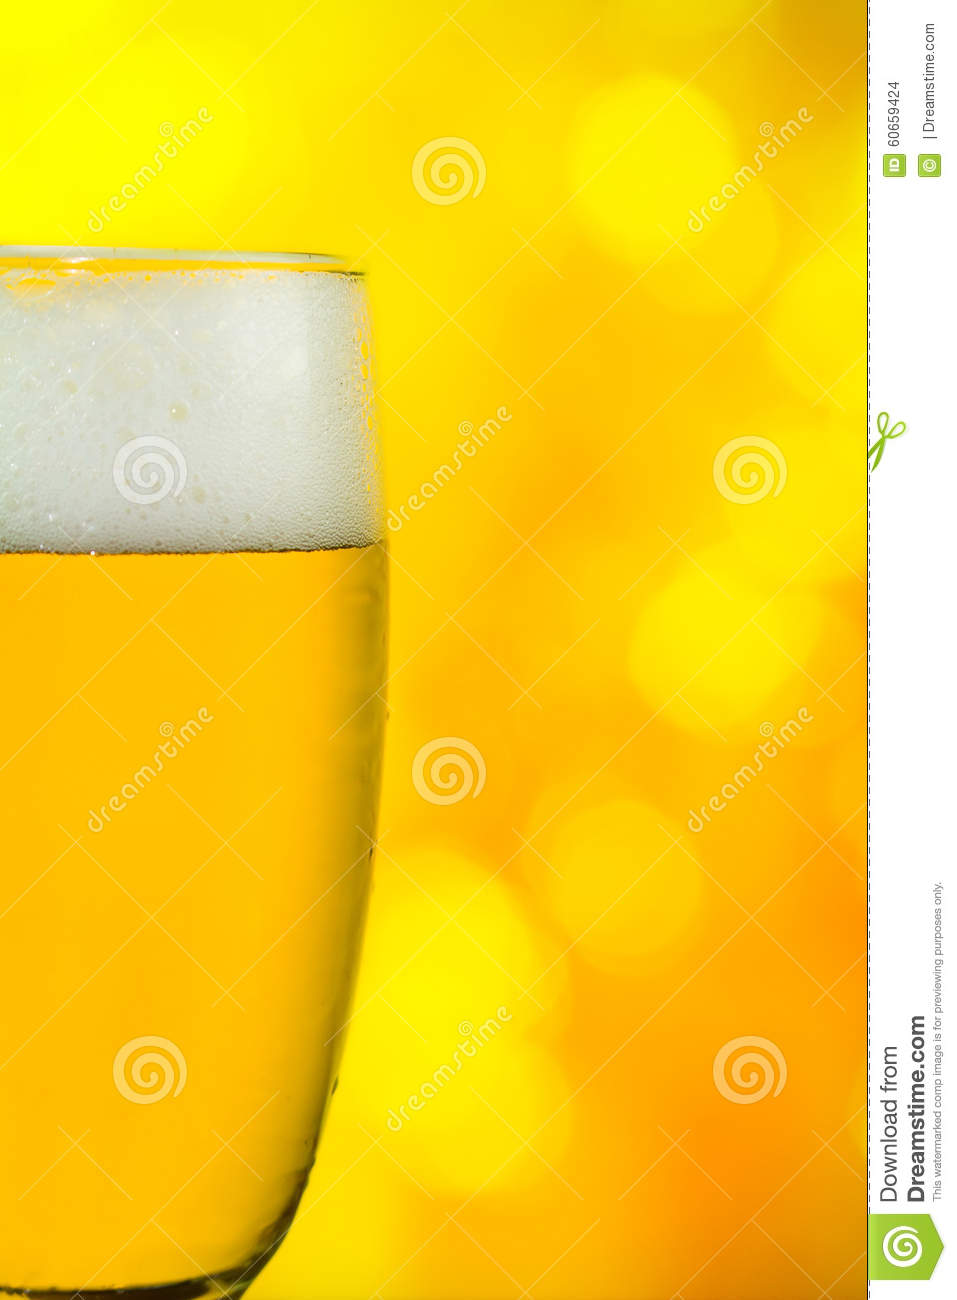 Beer in a glass on yellow blink back light background